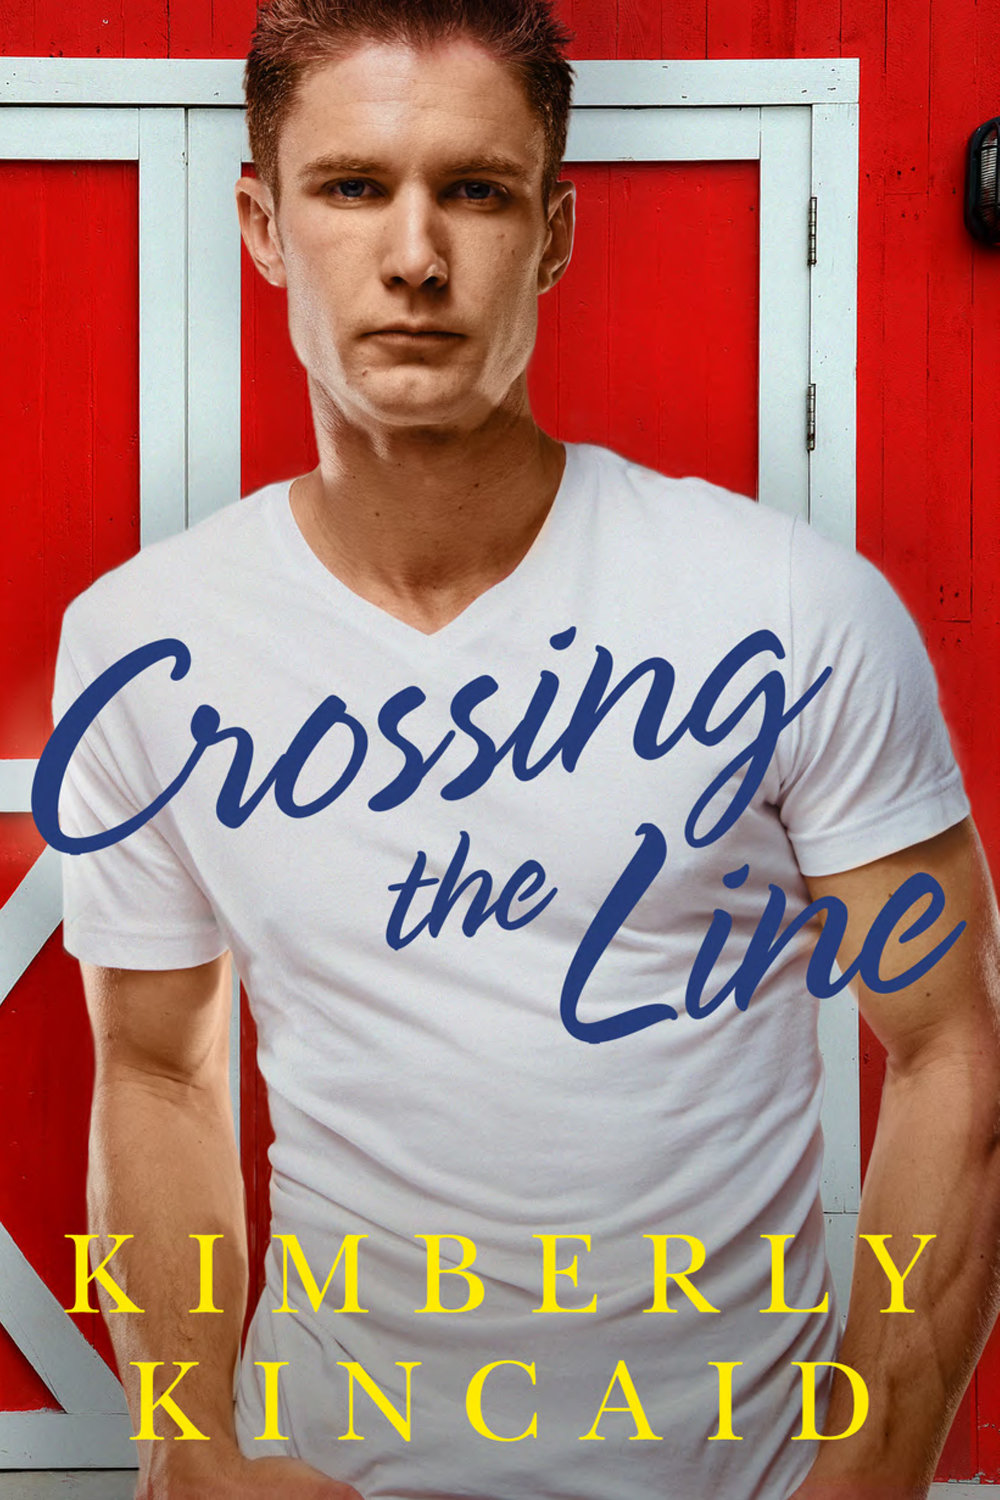 Crossing the Line cover 1.jpg